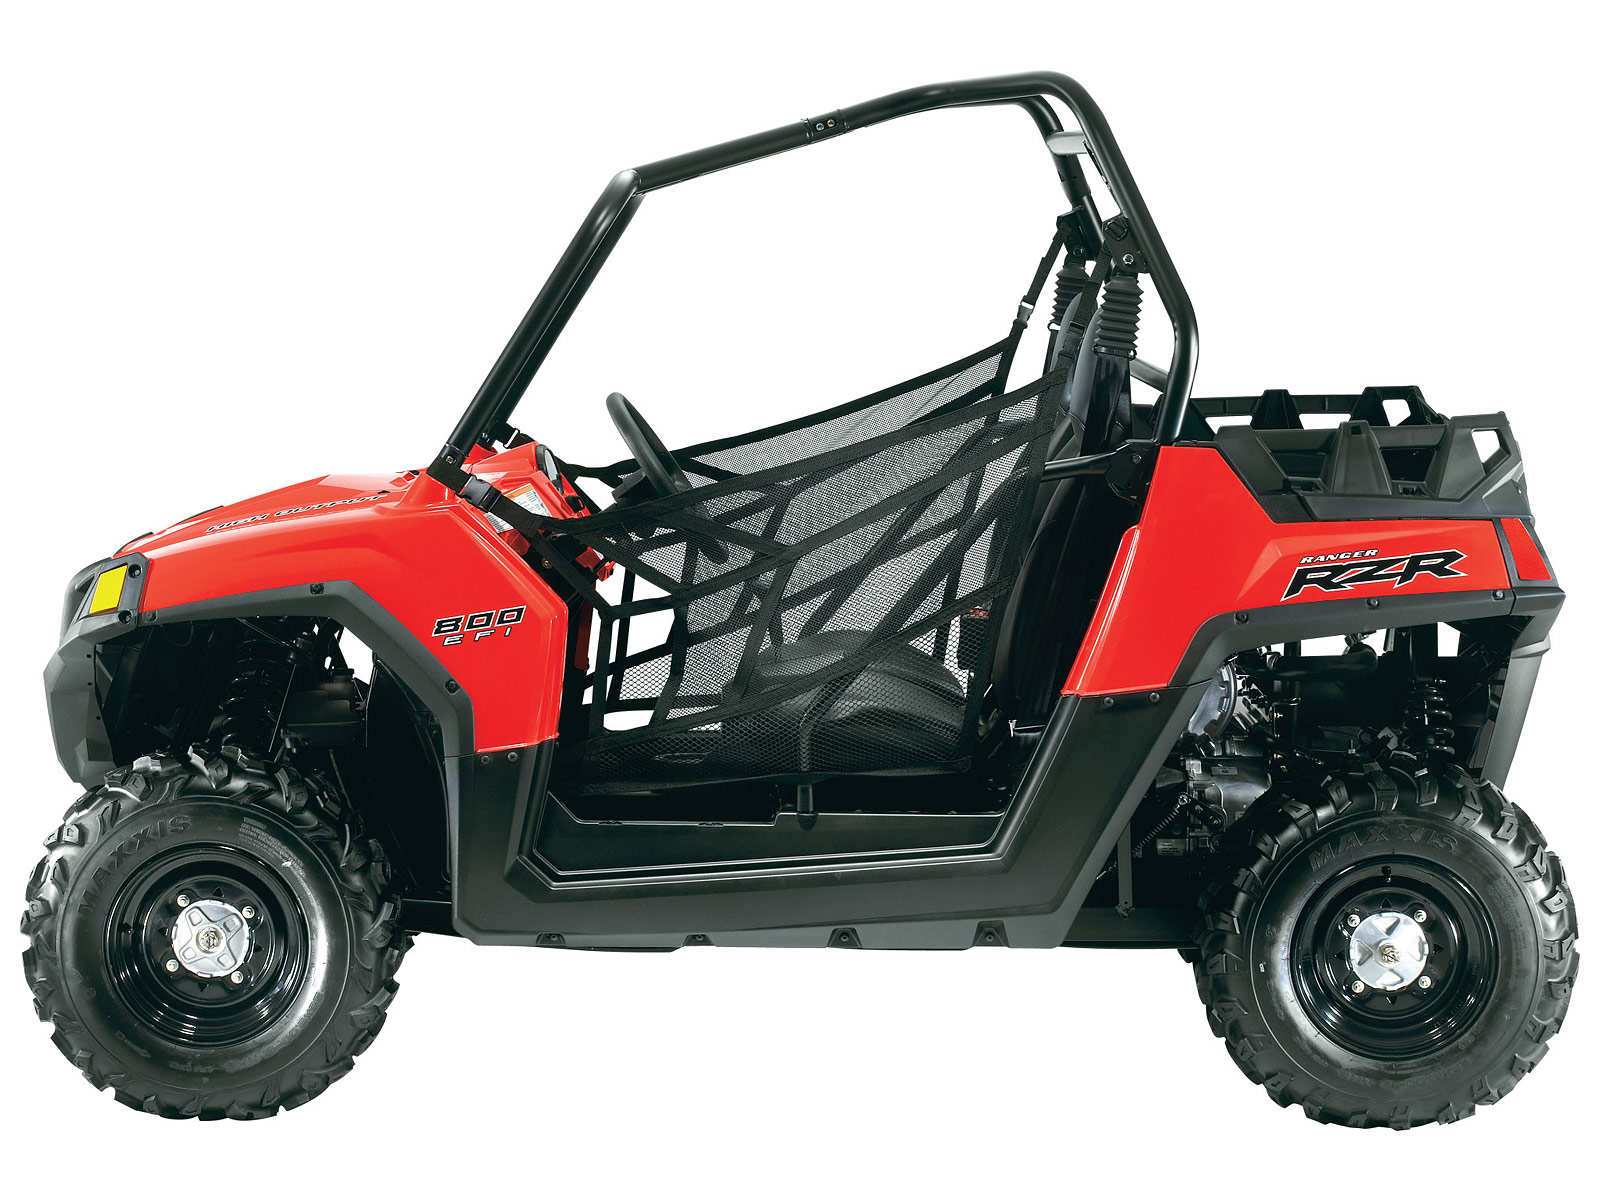 WRG-5168] 2013 Polaris Ranger Rzr Rzr S Rzr 4 Utv Repair Manual Pdf